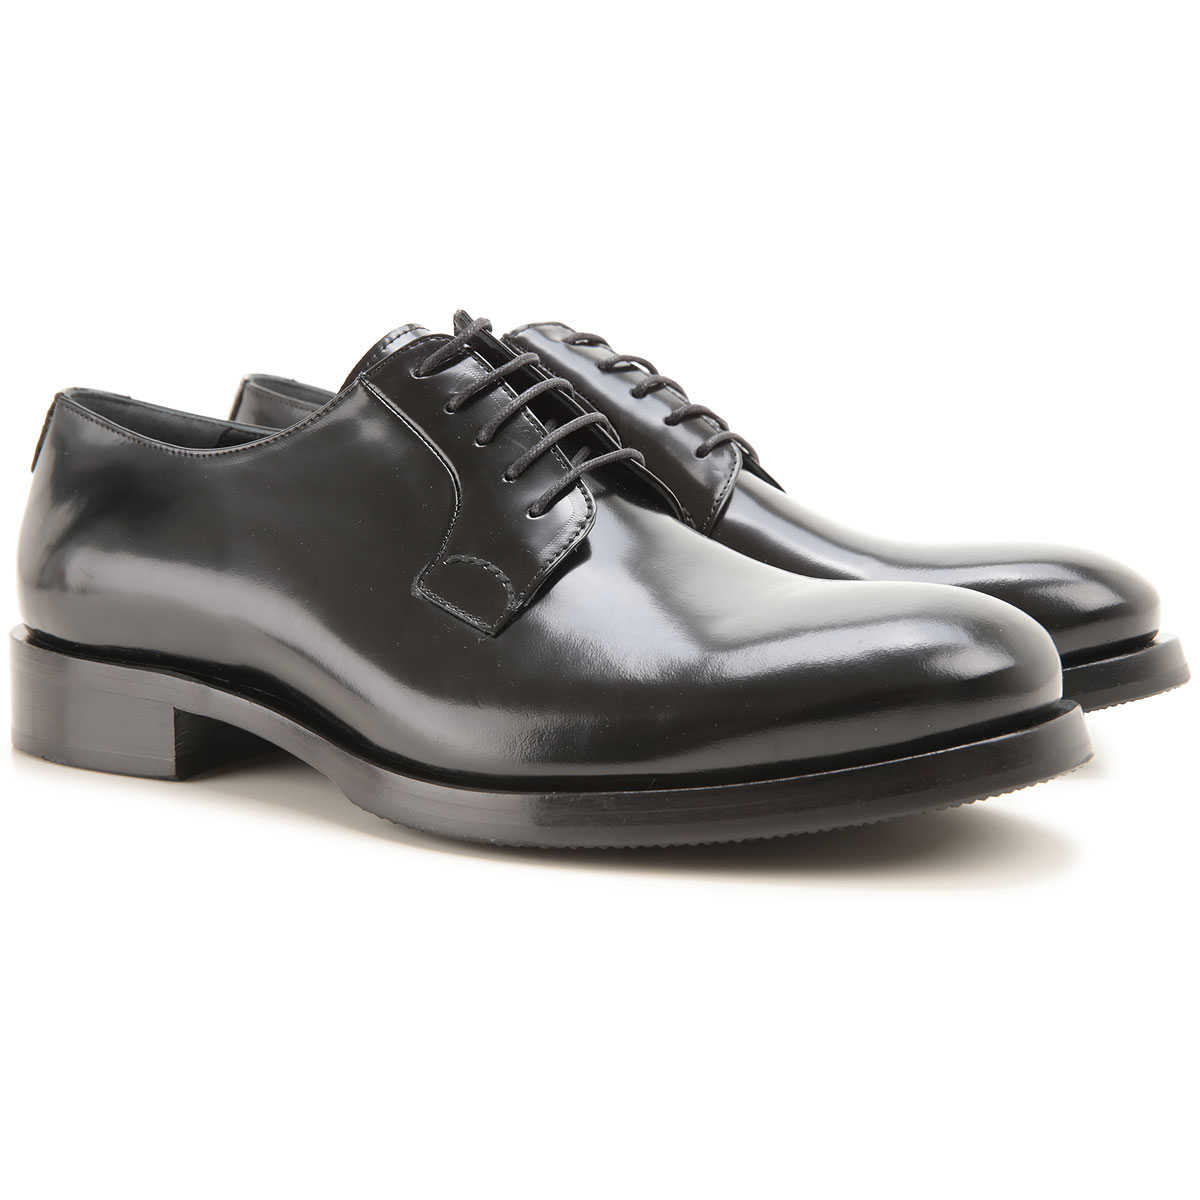 Karl Lagerfeld Lace Up Shoes for Men Oxfords